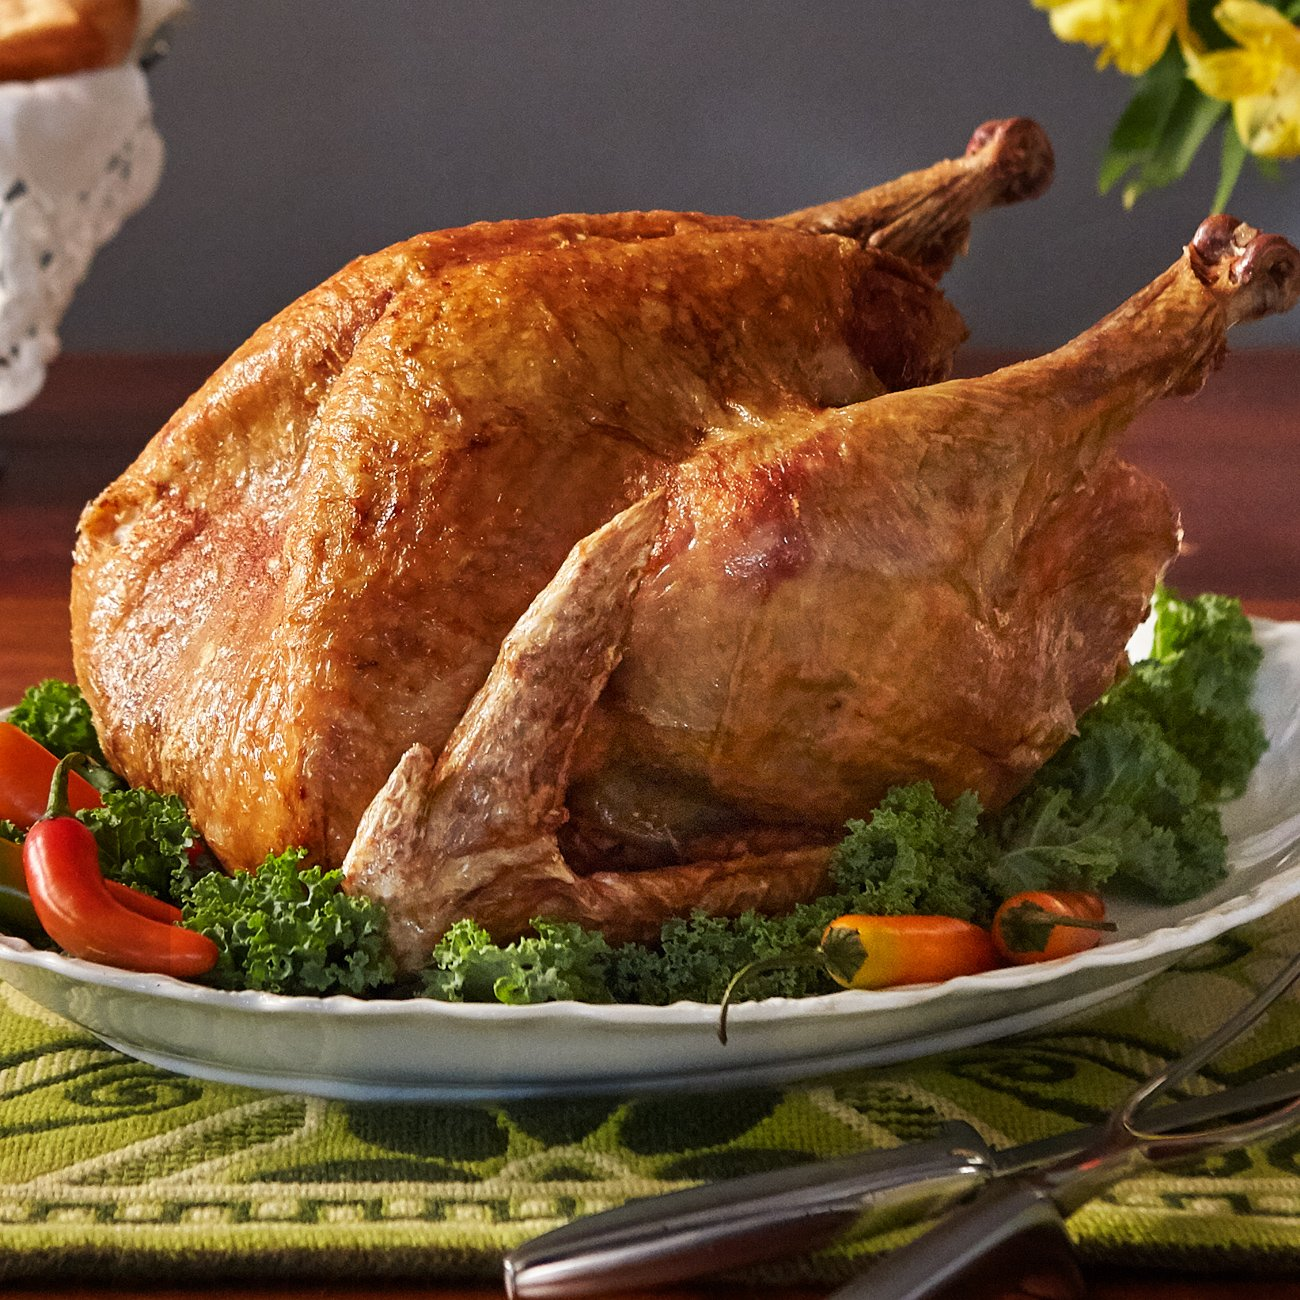 Honey Chipotle Deep Fried Turkey Recipe From Heb